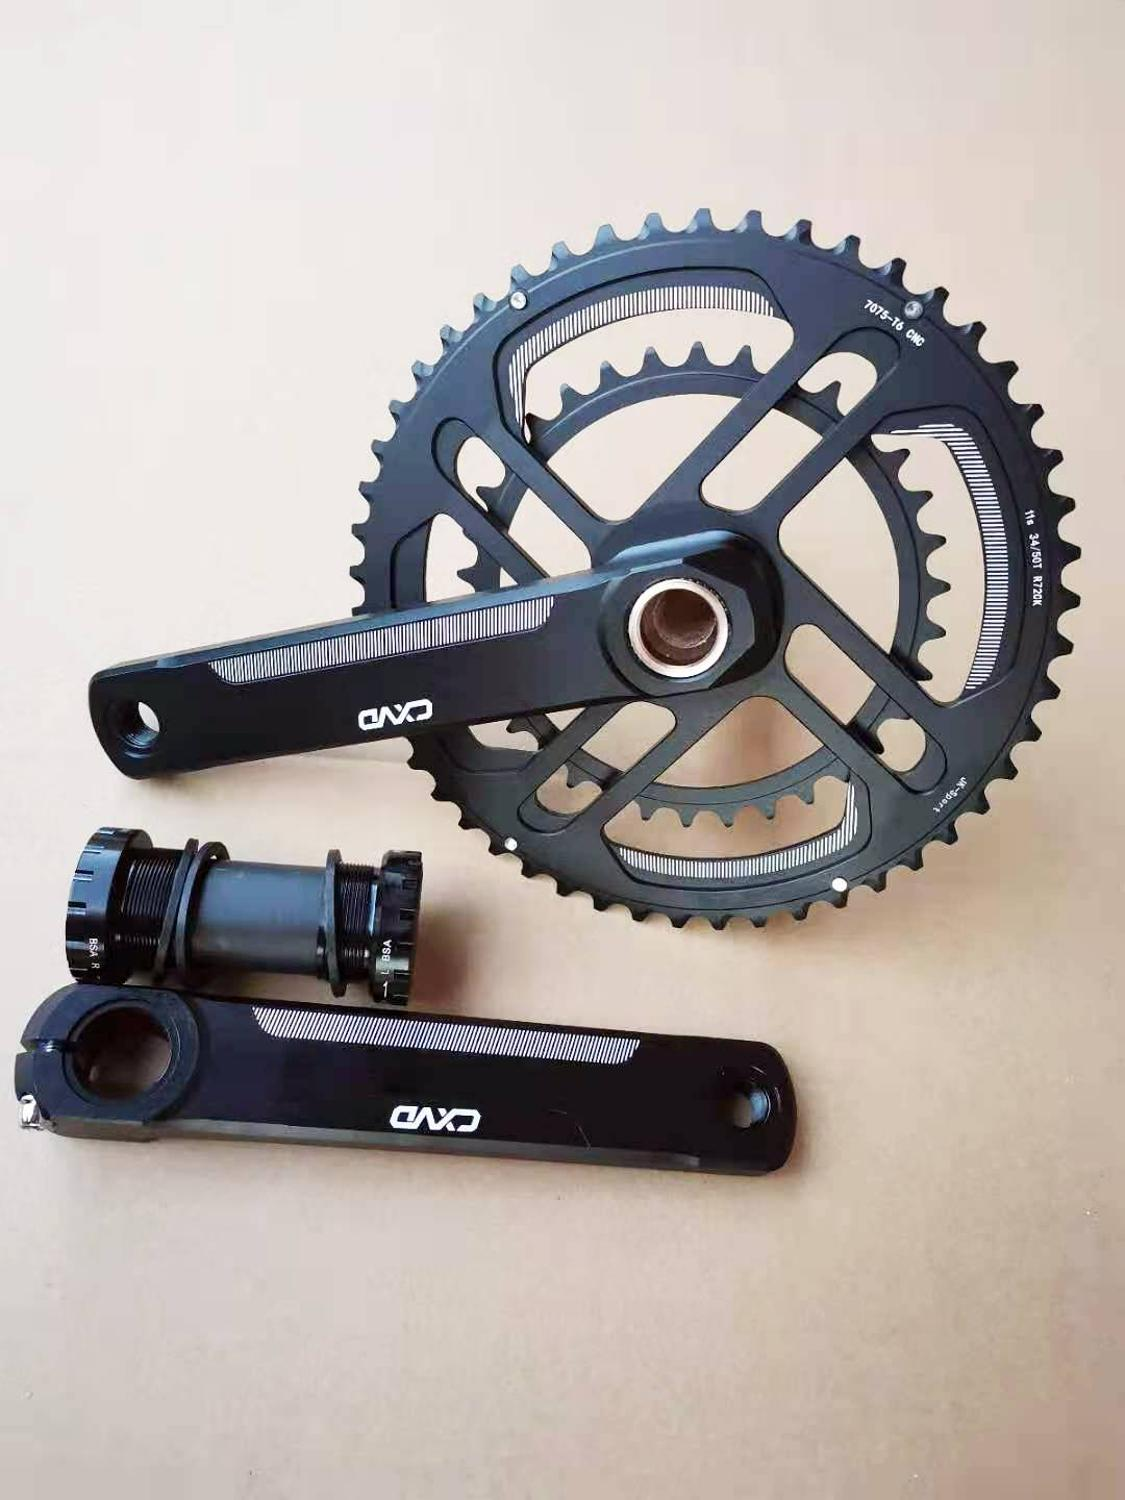 bicycle crankset 2 x 10 /11/12 Speed Road Chainset Chain Wheel crank protector, 50/34T, 170mm Cranksets bicycle parts